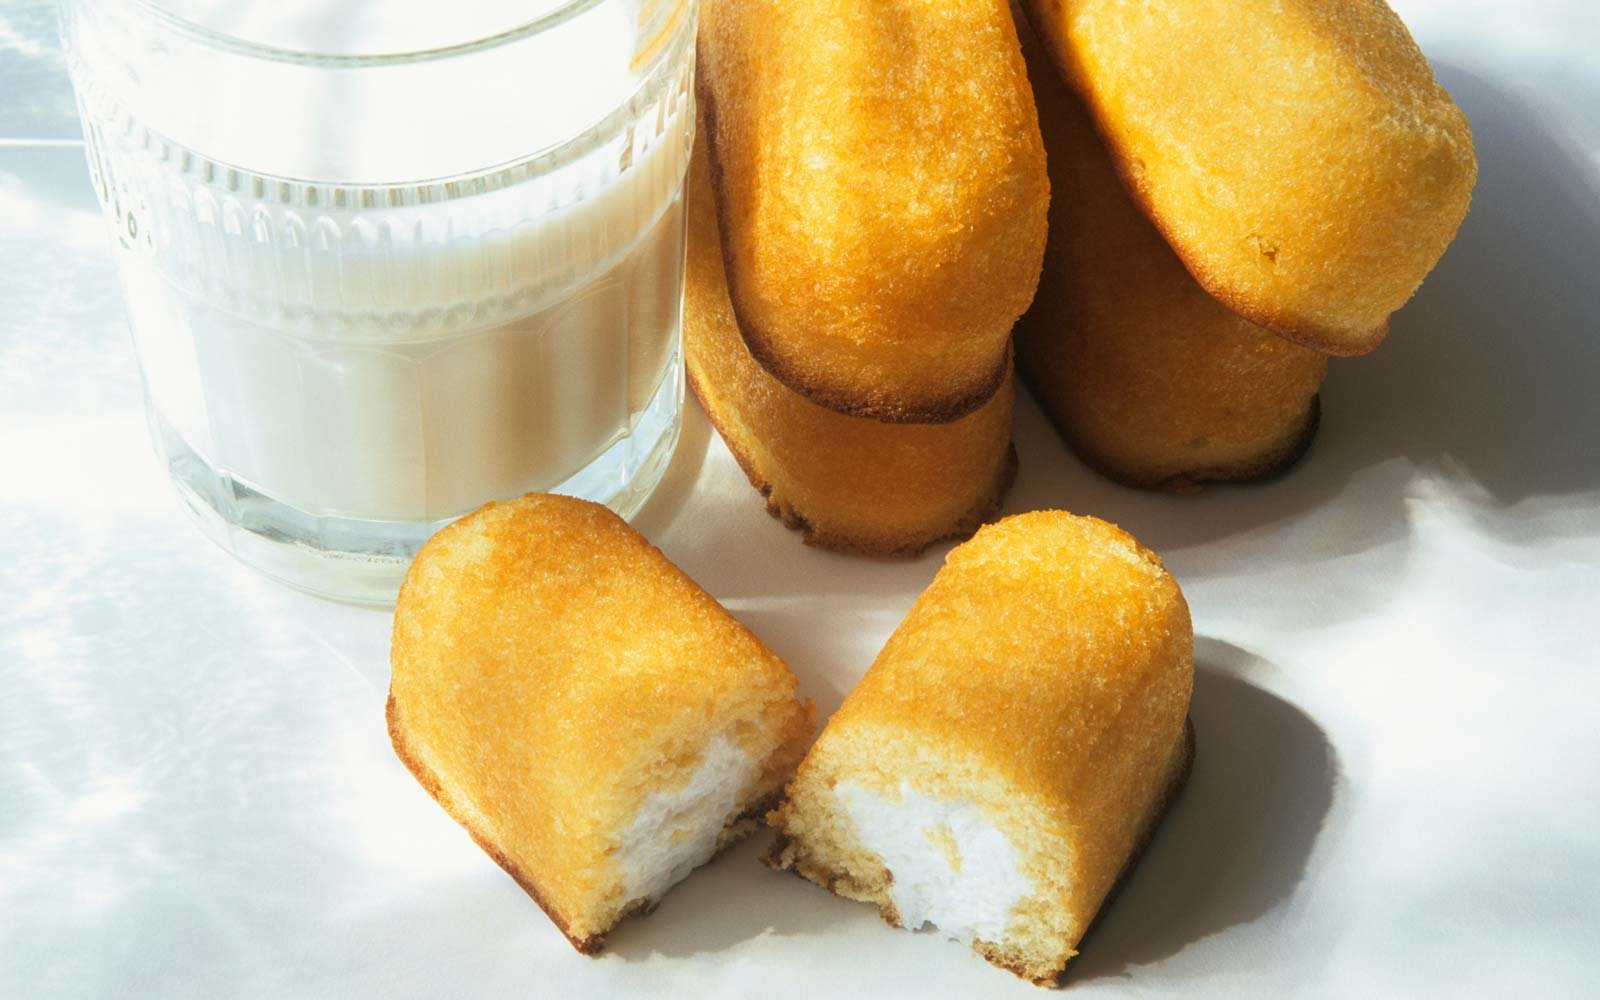 Twinkies with glass of milk, close up